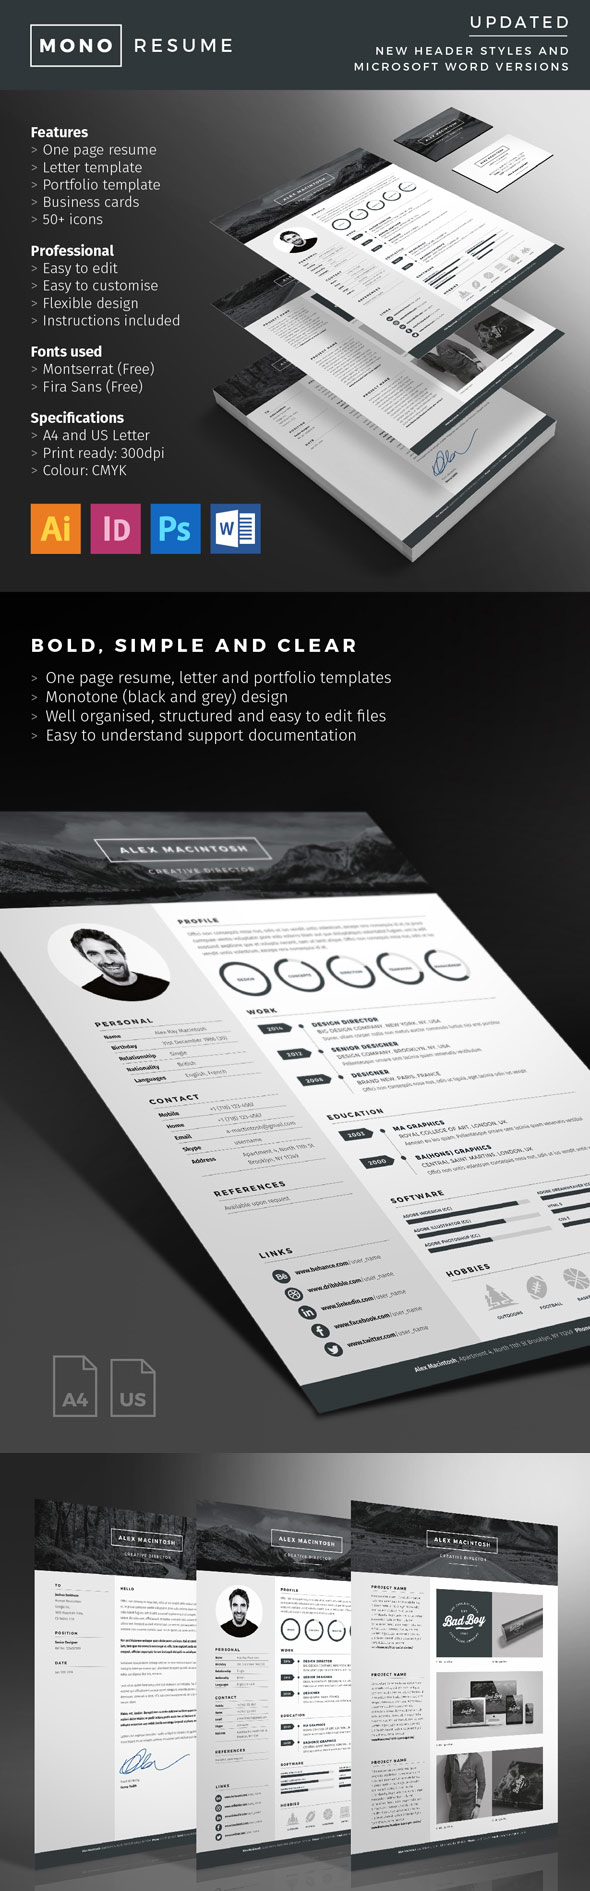 Mono Resume With Minimal Design